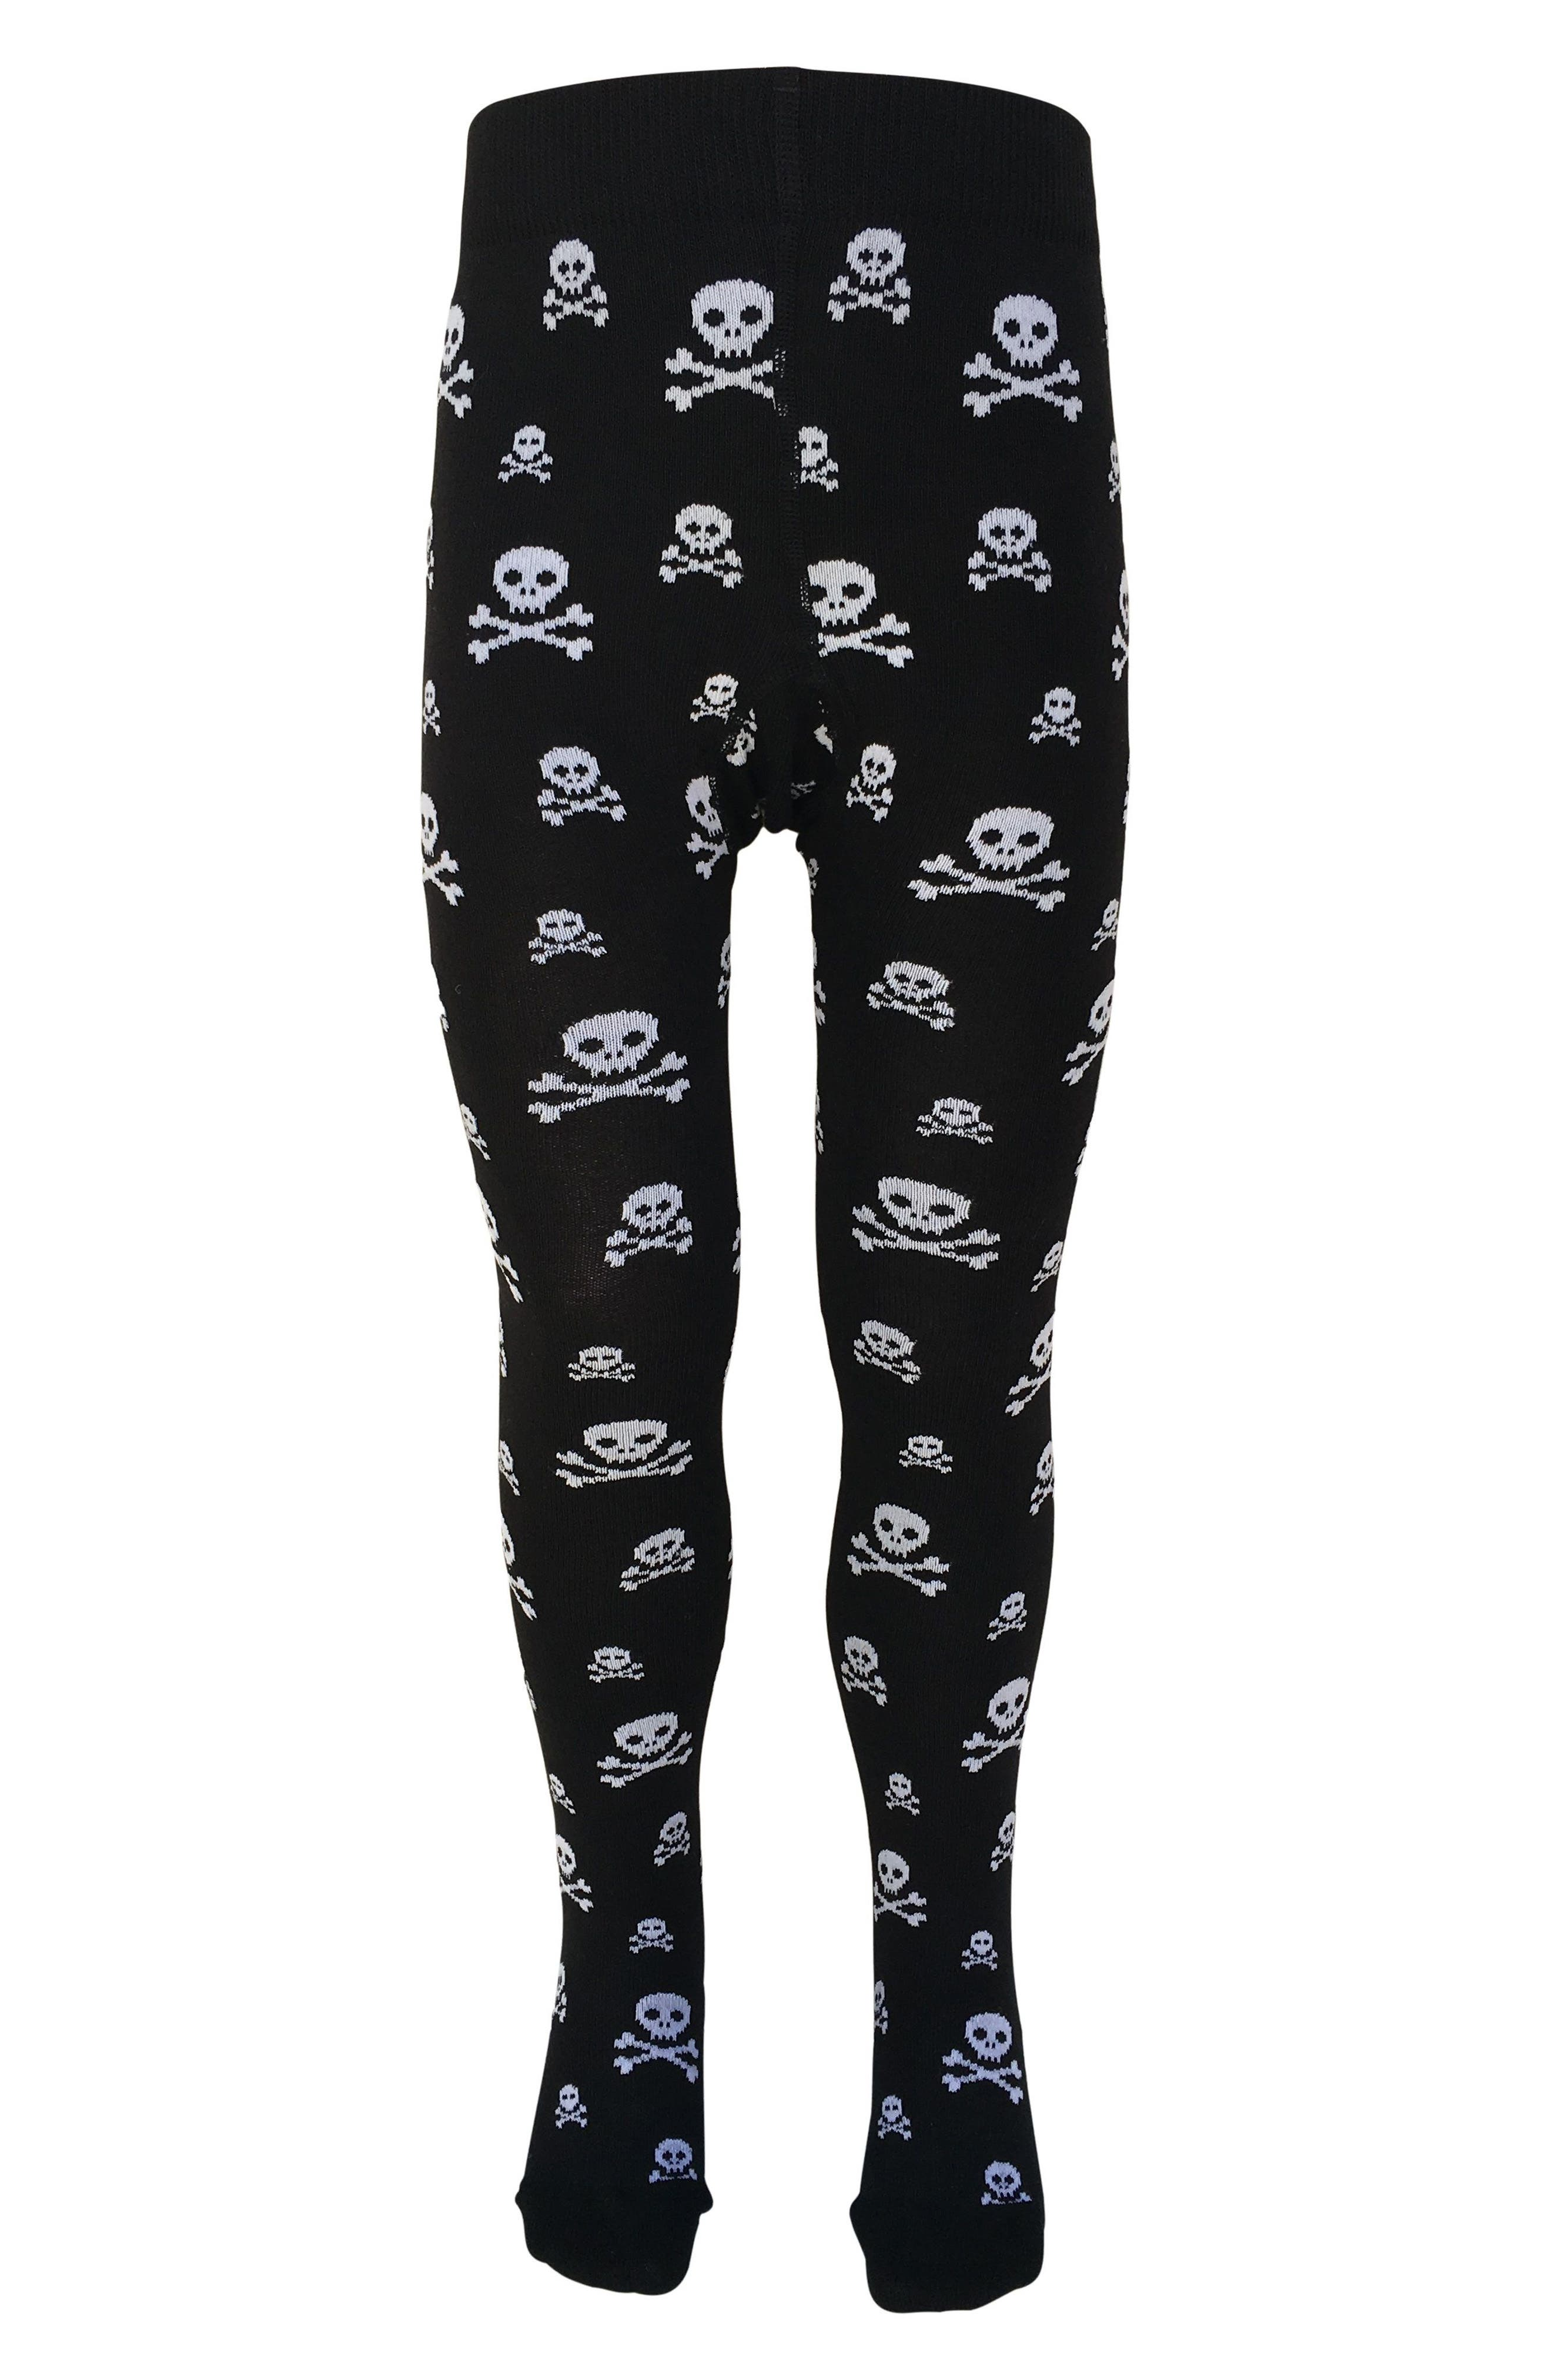 Skull Tights,                         Main,                         color,